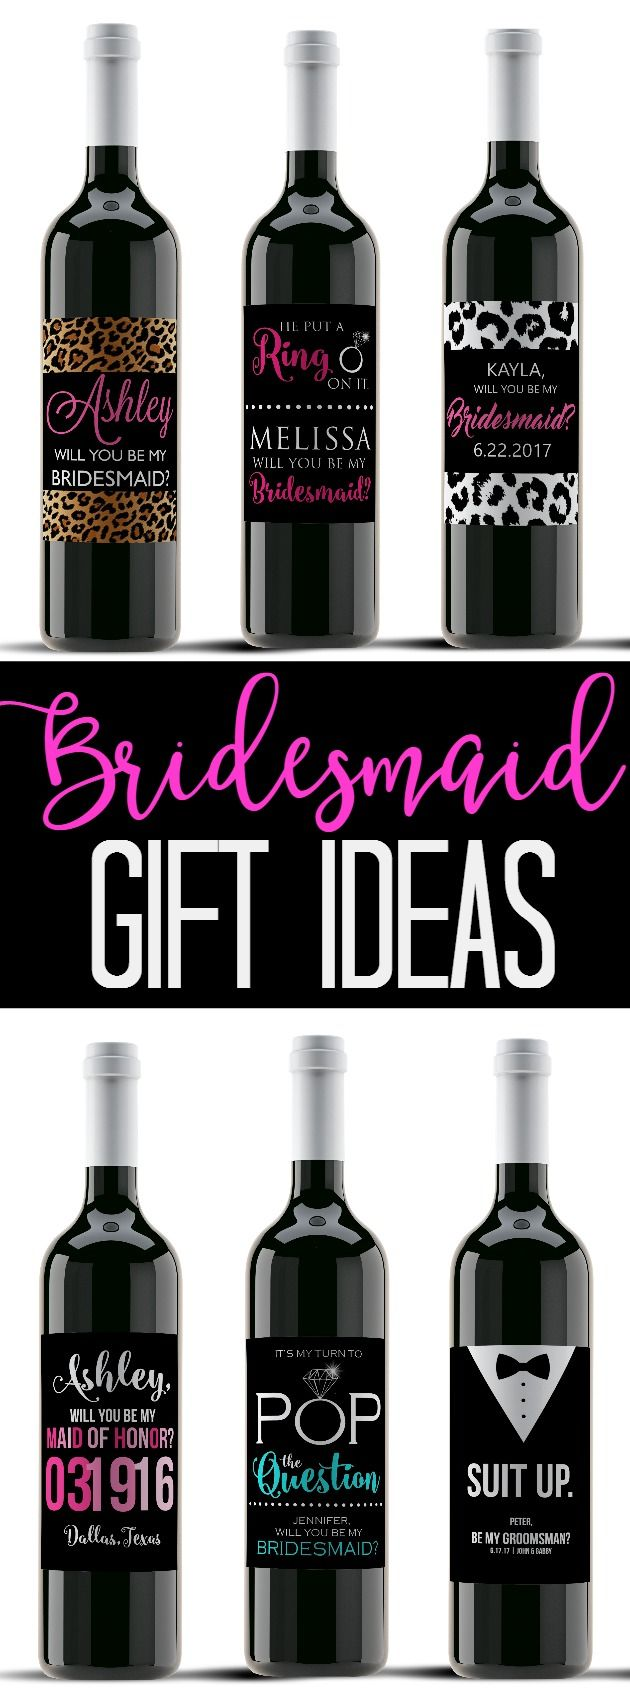 "Bridesmaid Wine Labels for your wedding party! Custom wine labels are the perfect unique bridesmaid gift and a special way to ask ""Will you be my Bridesmaid?"" - Customize wine labels for each member of your wedding party and present them with this unique Bridesmaid or Maid of Honor gift idea. You can change colors, titles, wording, etc."